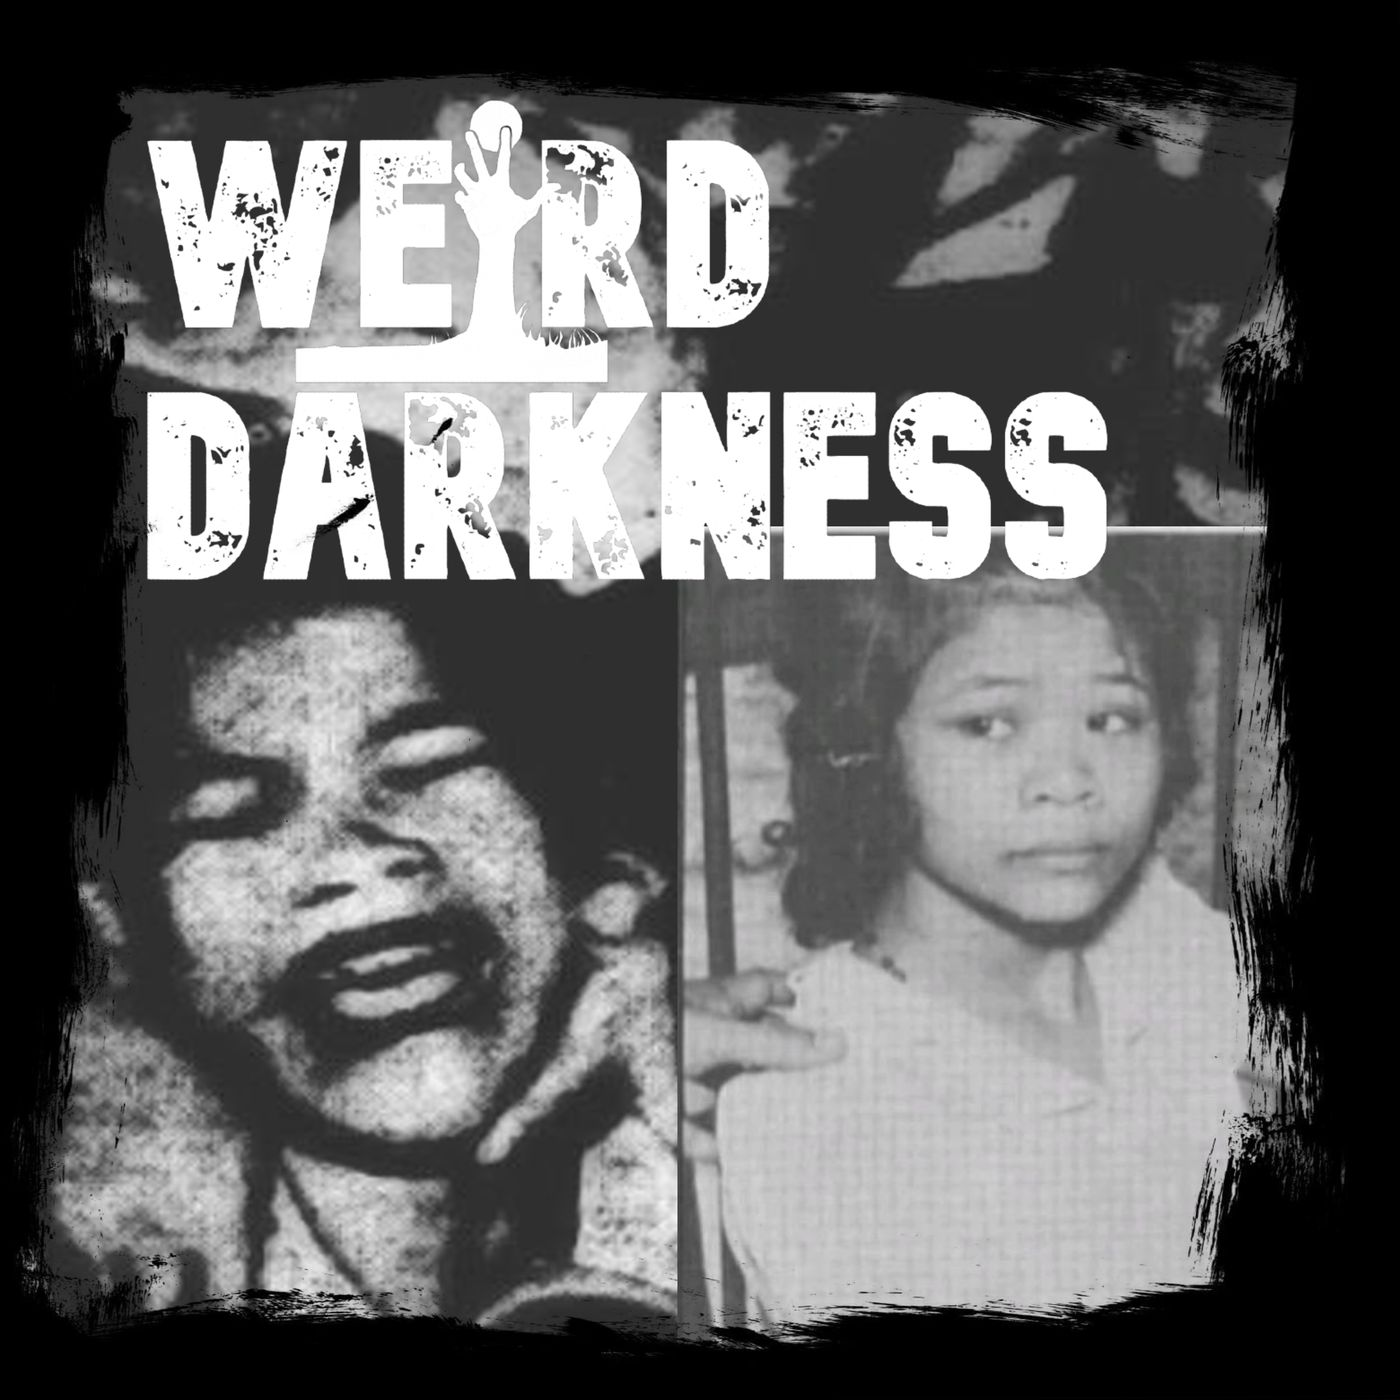 """THE GIRL BITTEN BY DEVILS"" and 4 More Creepy True Stories! #WeirdDarkness"